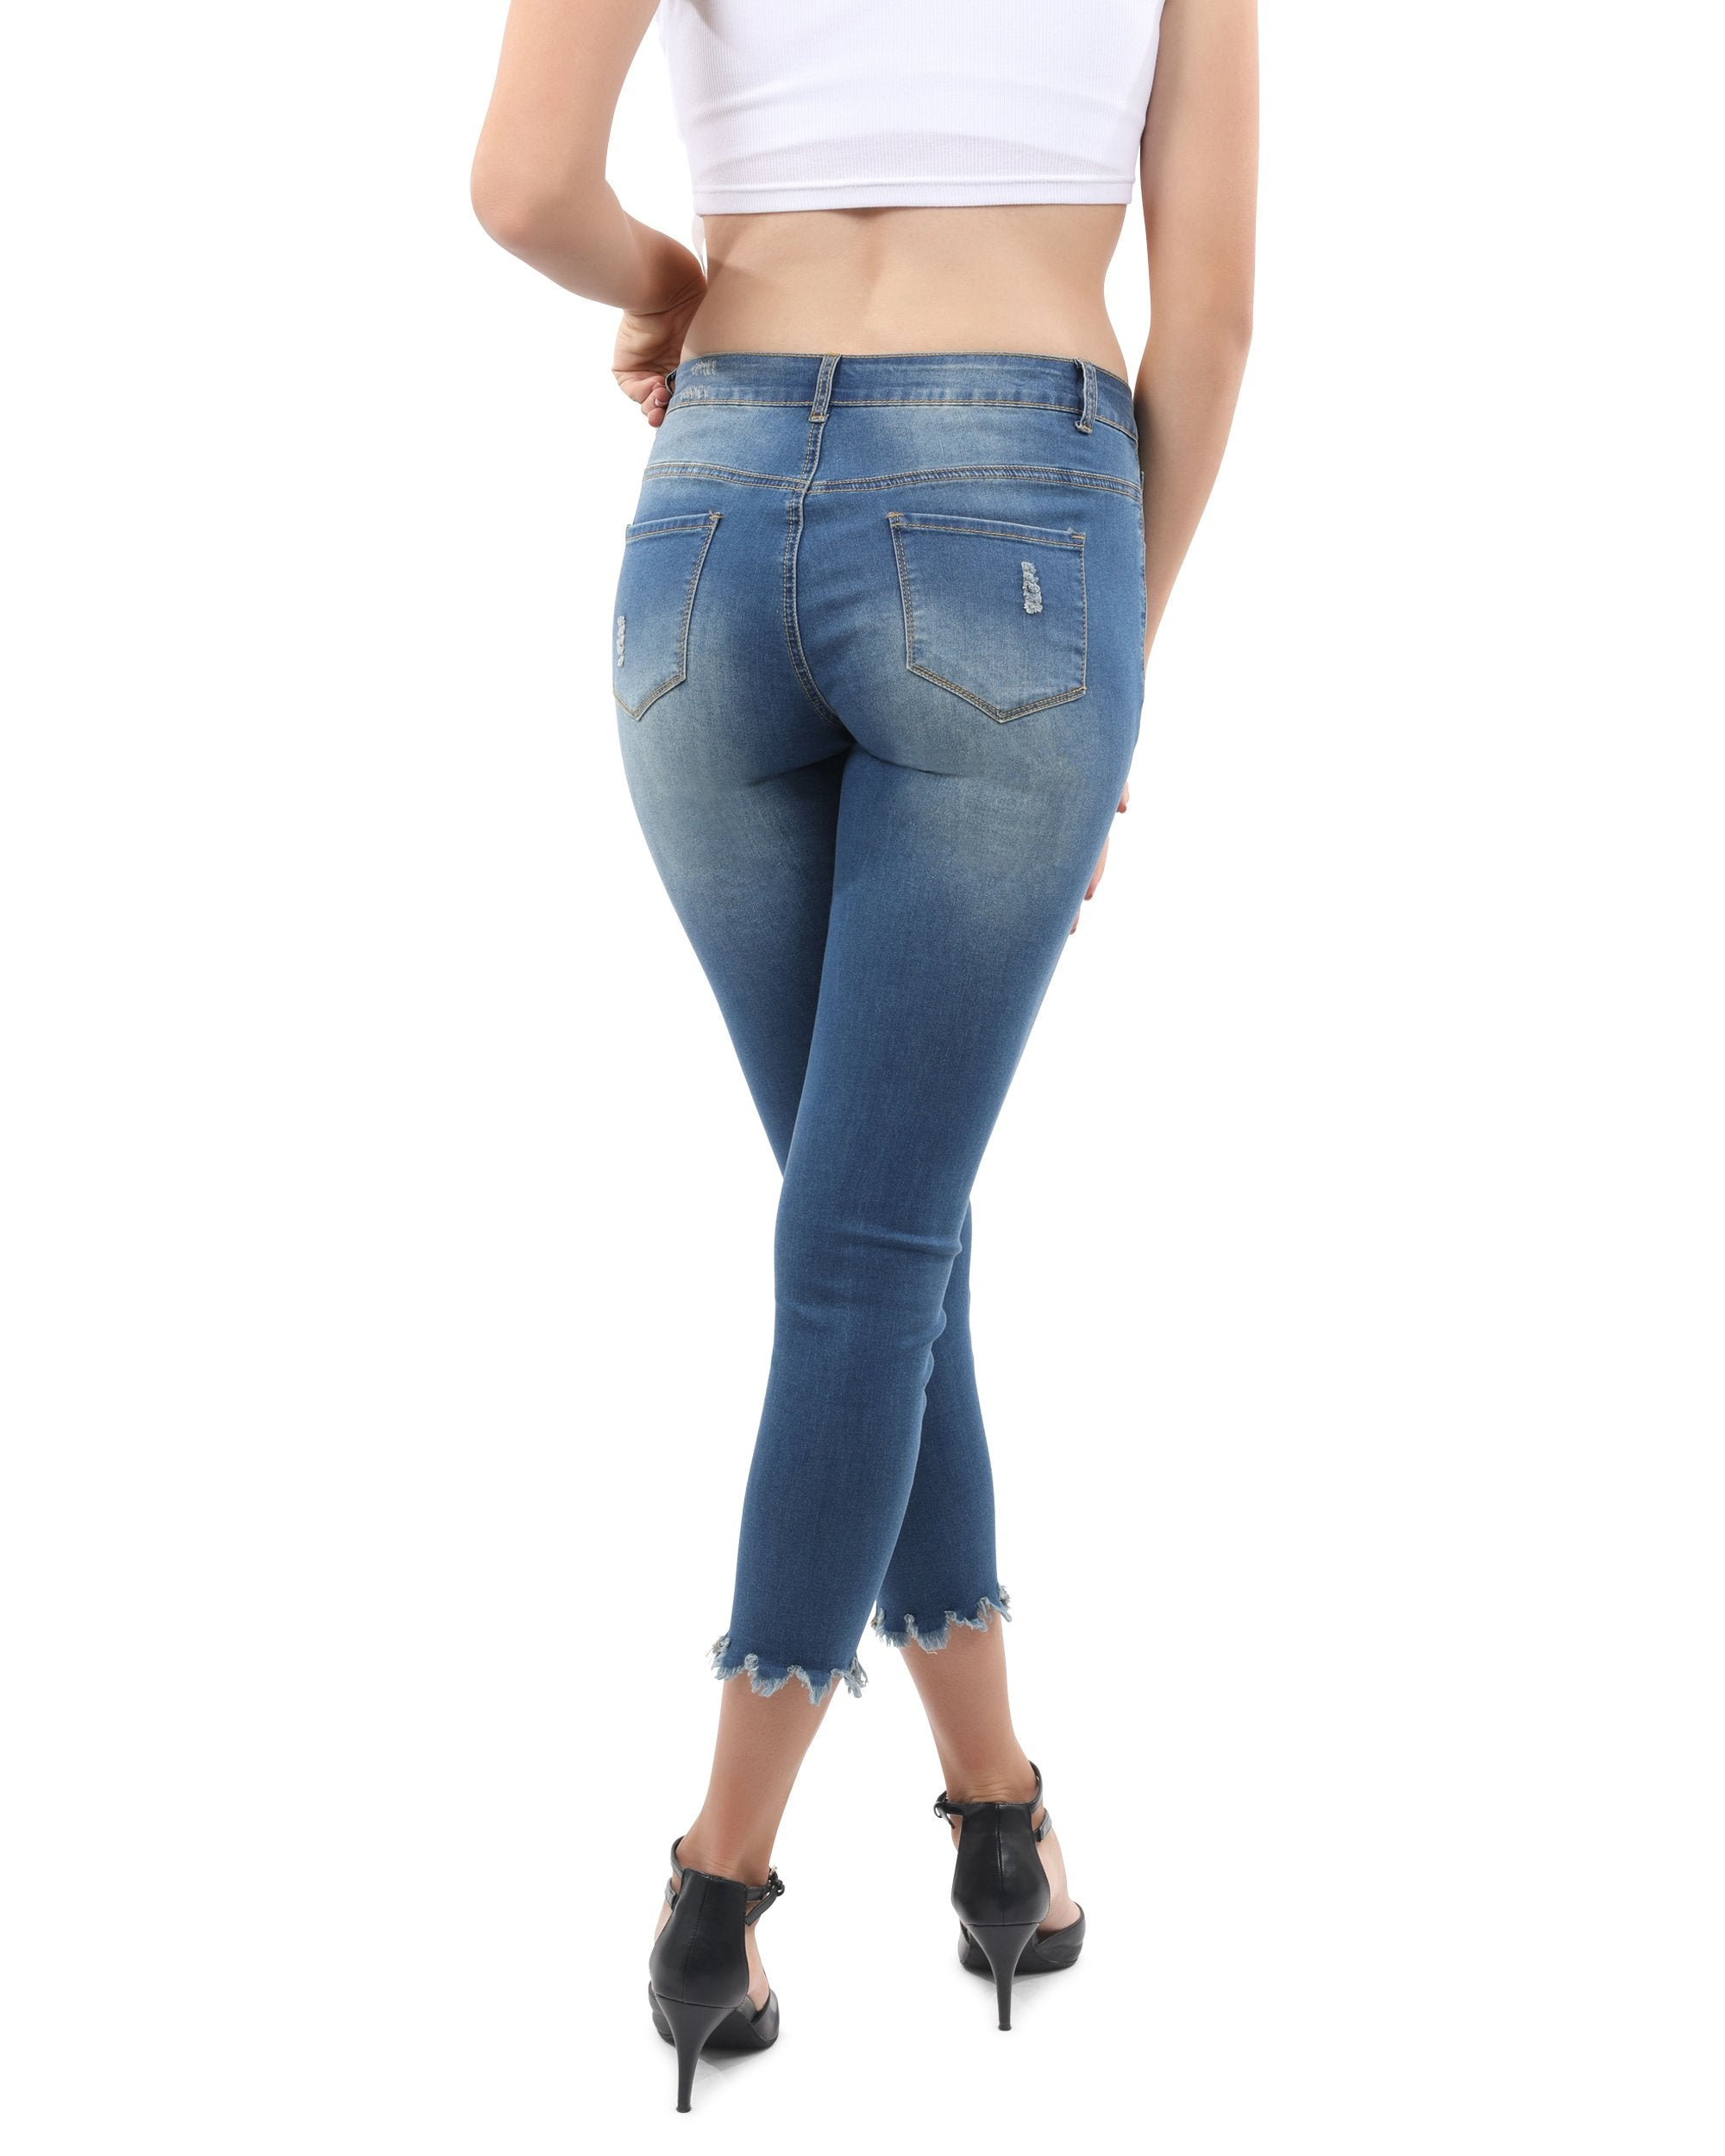 Distressed Jeans by Wundersky Activewear